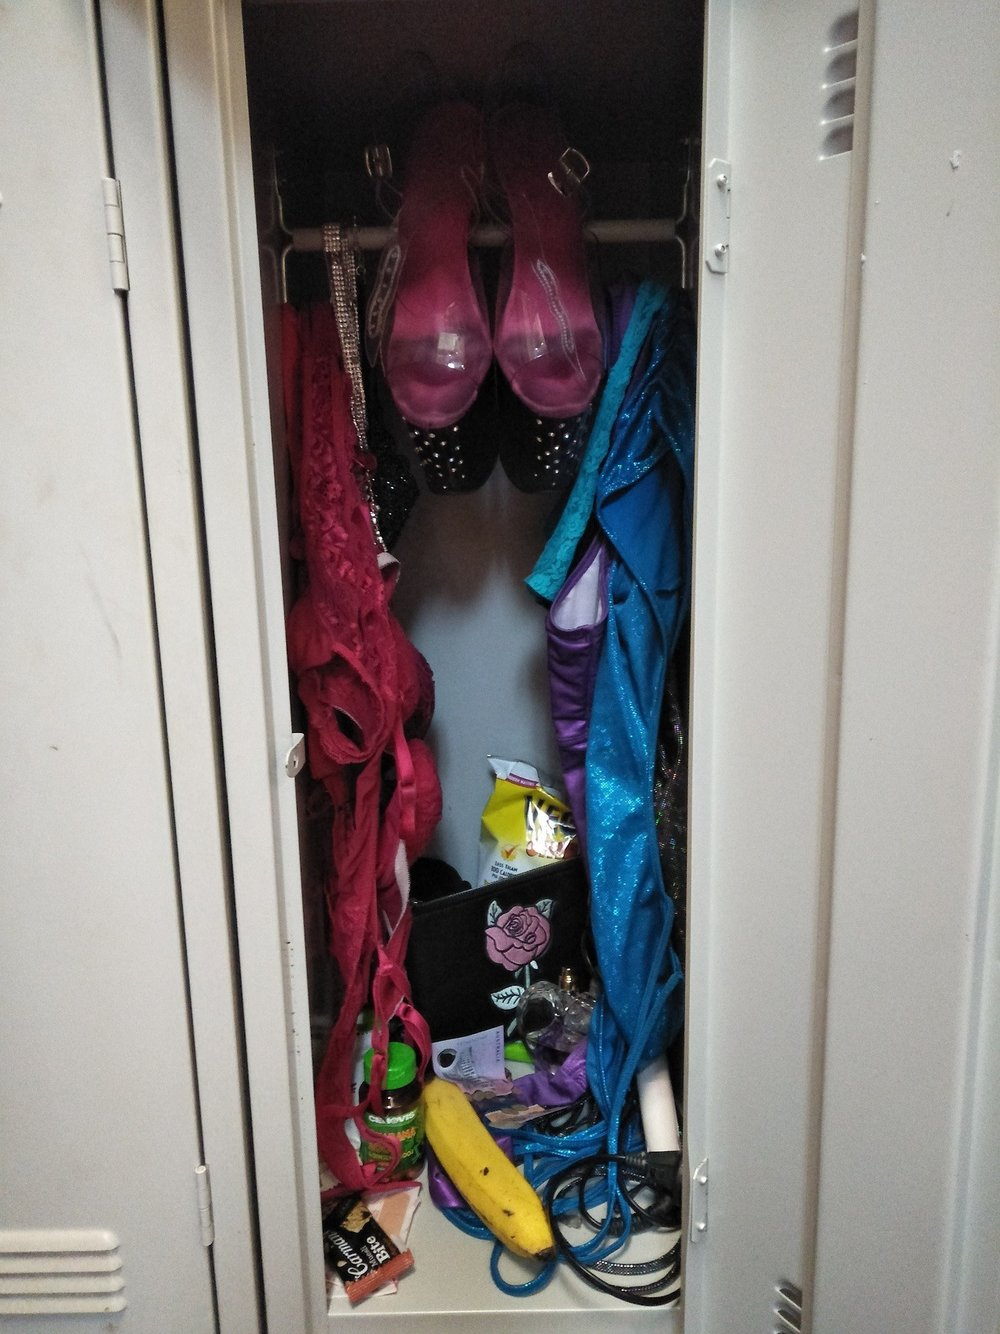 Carly Smith image - stripper locker.jpg